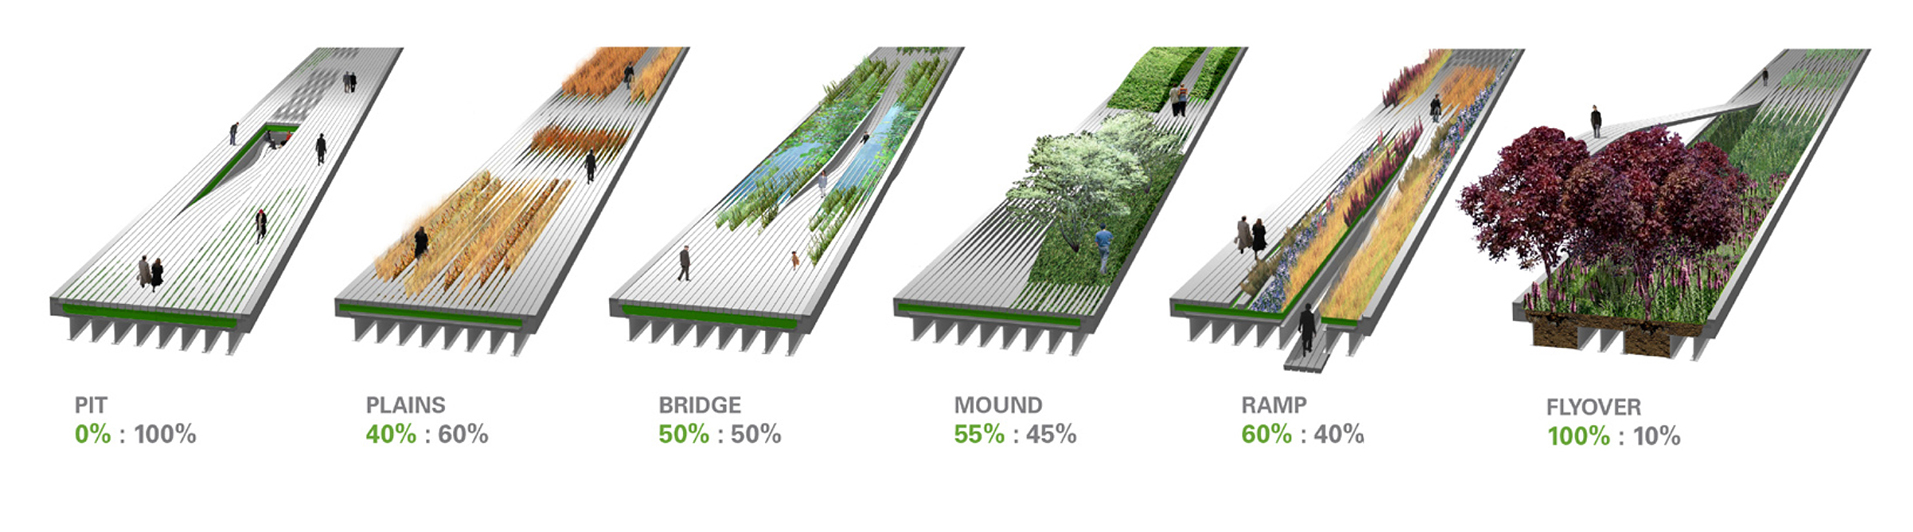 Information graphics designed to represent the various possible relationships between the modular walkway planks and plant life. [James Corner Field